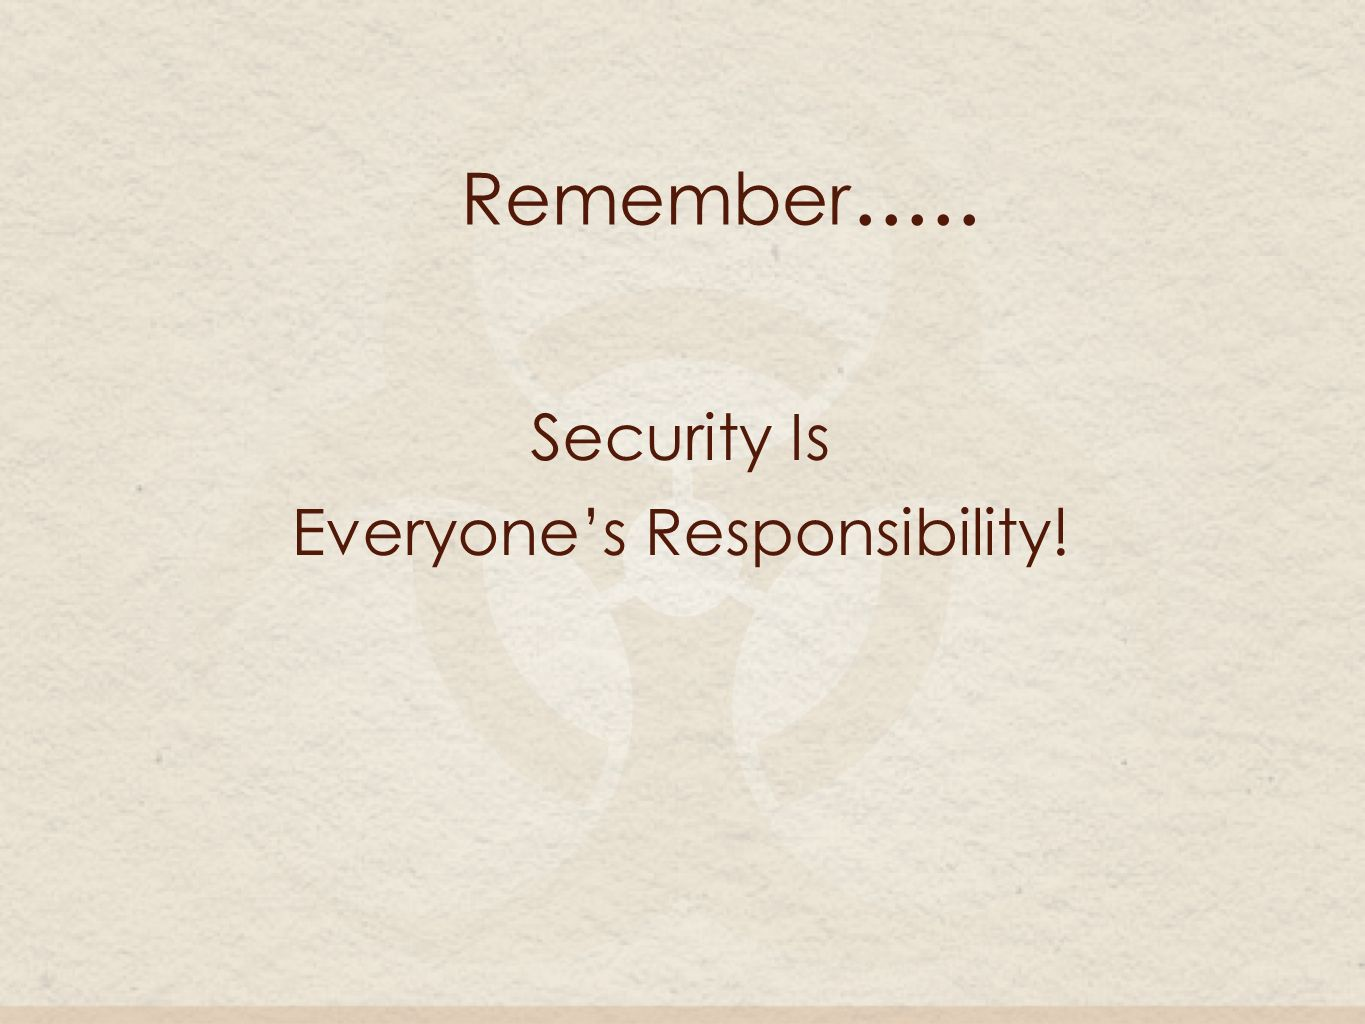 Security Is Everyone's Responsibility! Remember.....